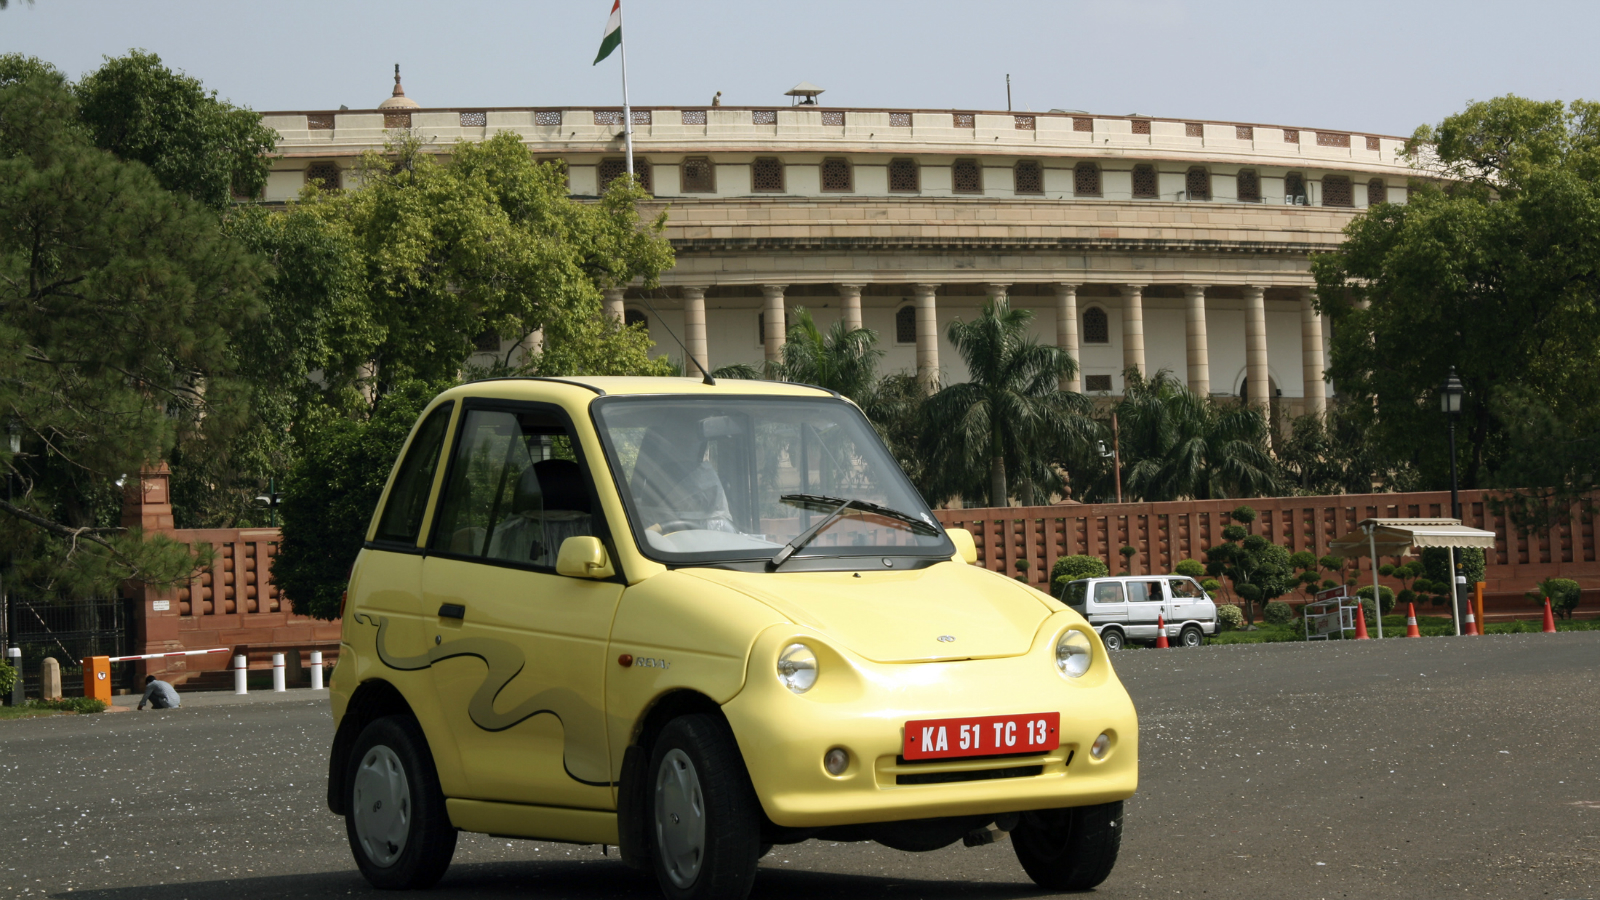 """The new-generation Revai electric car is seen in this undated photo near the Indian Parliament building in New Delhi. Long before """"green"""" cars became cool in most parts of the world, a relatively unknown Indian industrialist, Chetan Maini, set up a venture in the mid 1990s to make electric cars in Bangalore, known better as a software services hub. Today, several Revai electric cars can be seen tootling along Bangalore's crowded streets, their bright colours, clean lines and minimalist design drawing curious looks, and smiles, even from harried commuters."""